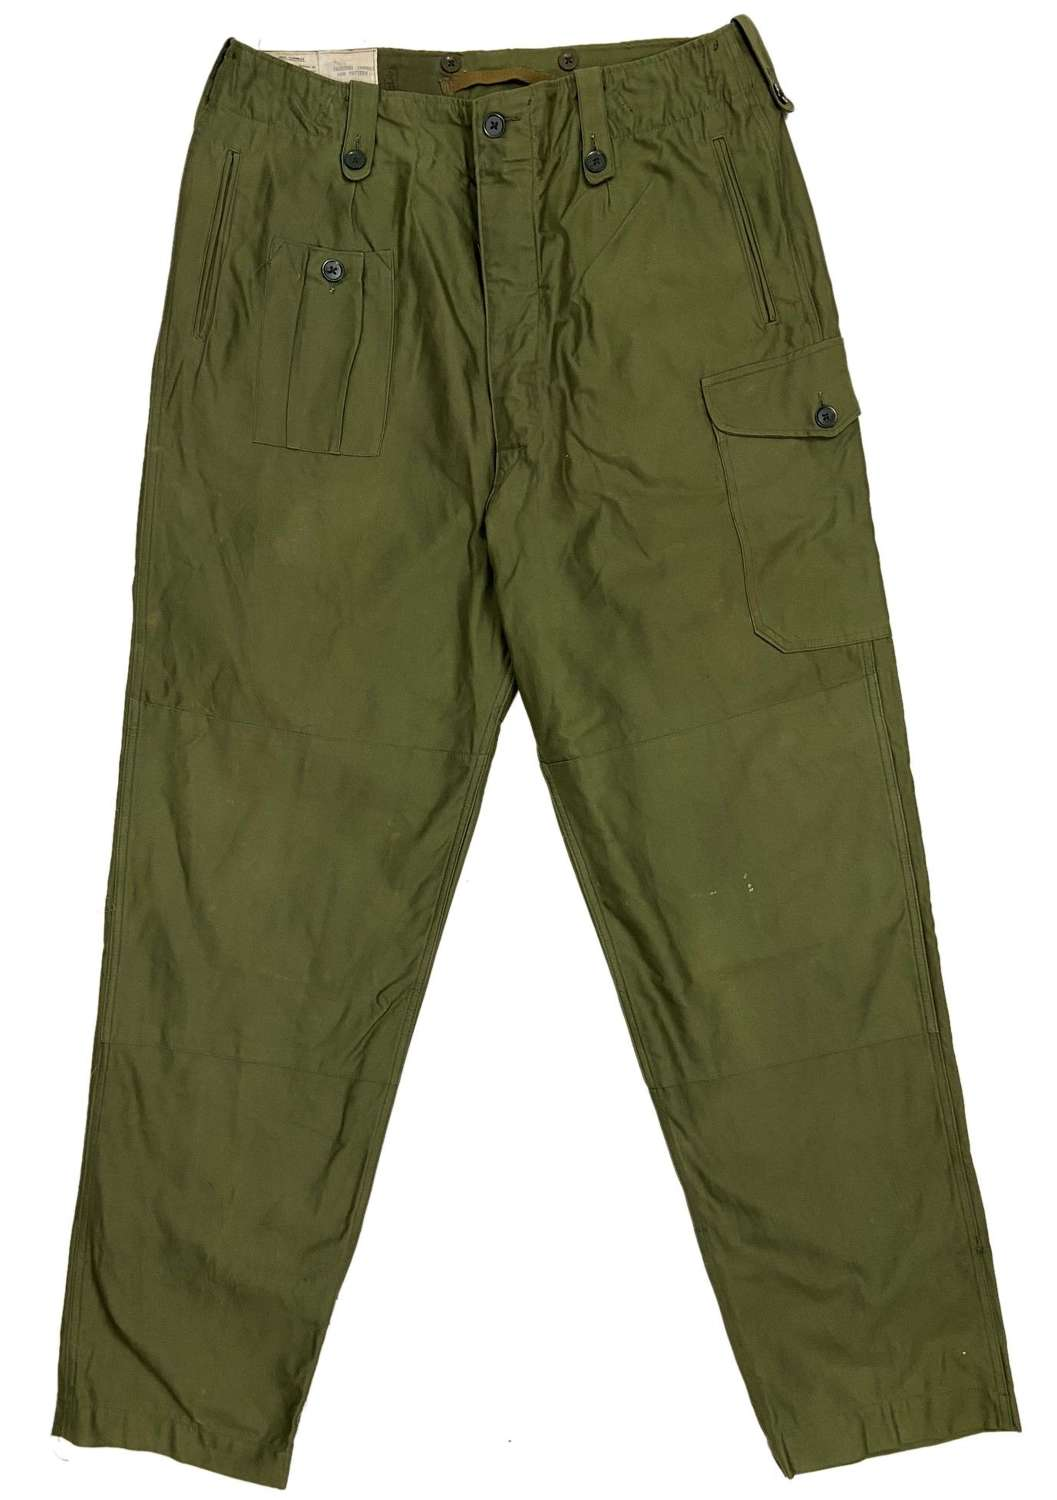 Original 1963 Dated 1960 Pattern Combat Trousers - Size 9